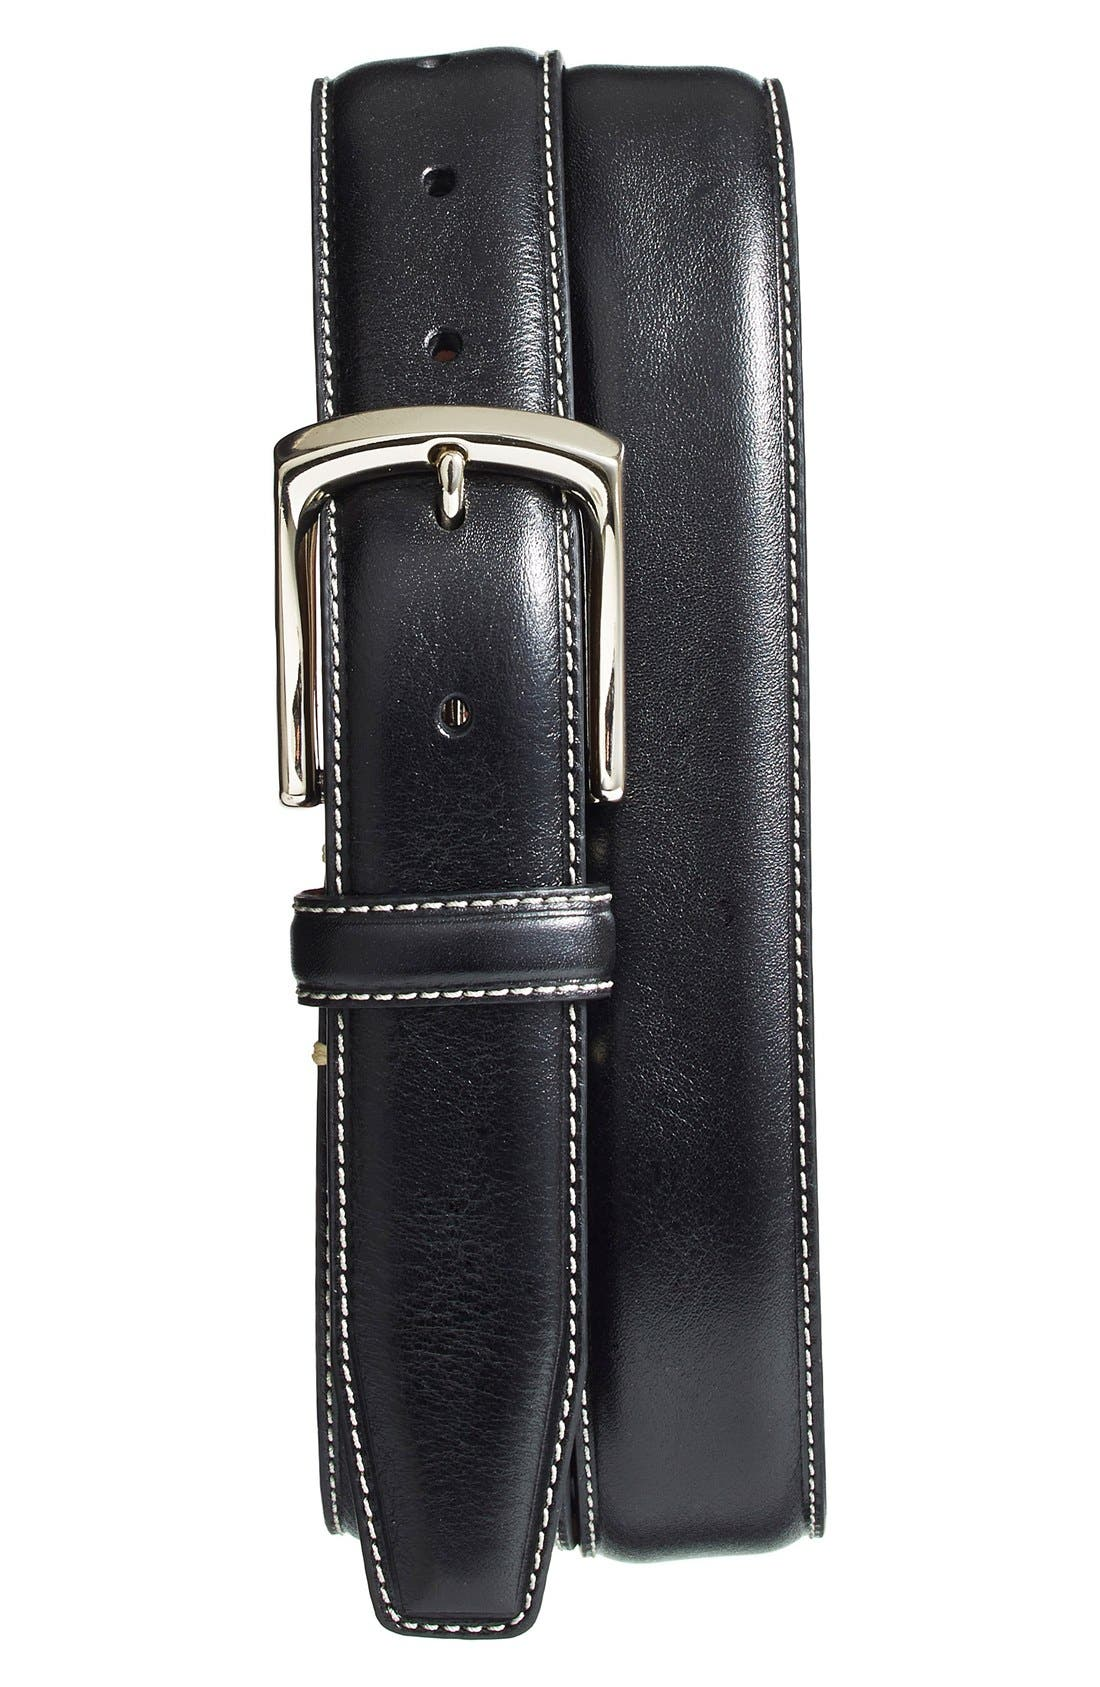 Immaculate contrast topstitching outlines a beautifully burnished leather belt secured by a gleaming buckle. Style Name: Torino Burnished Leather Belt. Style Number: 5080292. Available in stores.